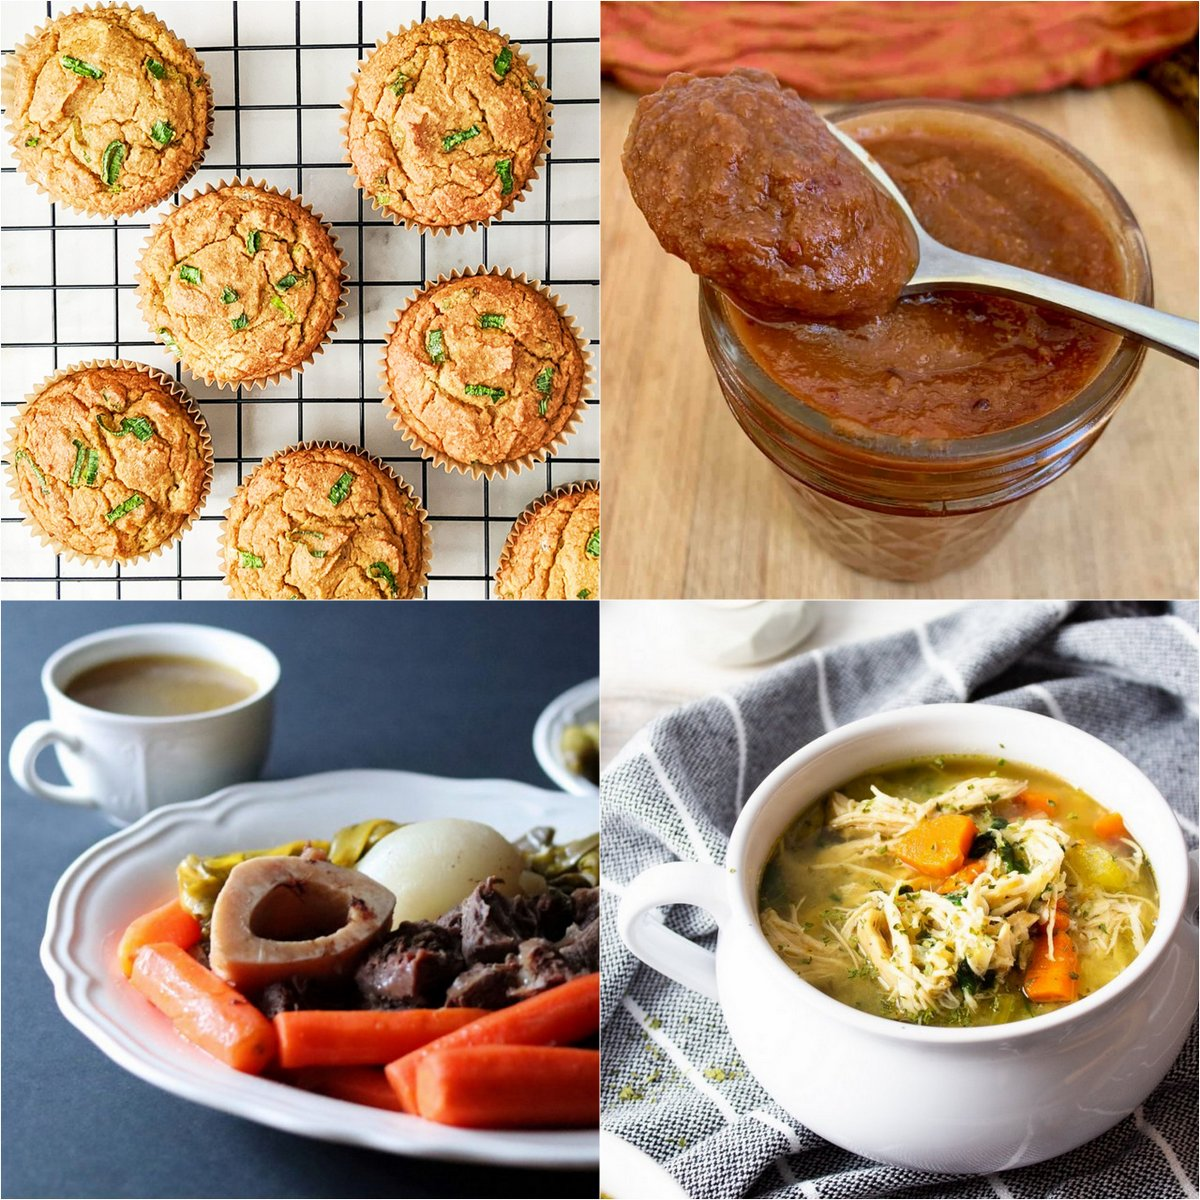 "Paleo AIP Recipe Roundtable #359 | Phoenix Helix - *Featured Recipes: Butternut Squash Scallion Muffins, Instant Pot Nomato Sauce, Hearty Chicken Vegetable Soup, and French Beef Stew ""Pot au Feu""."